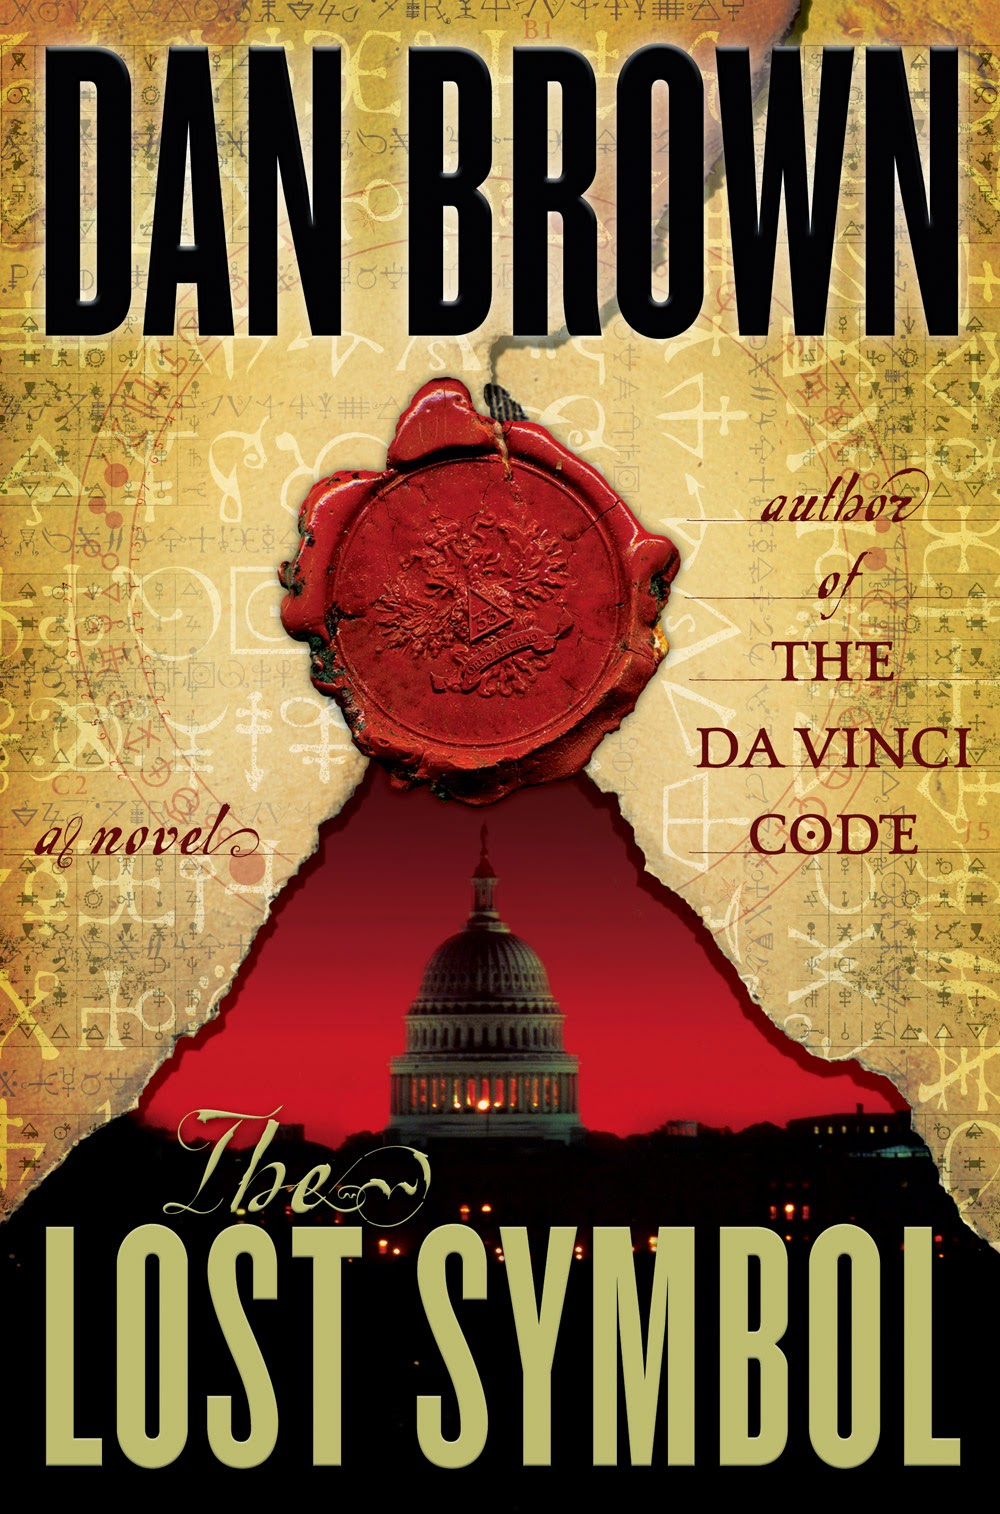 Does Dan Brown use rhetorical questions in any of his books?